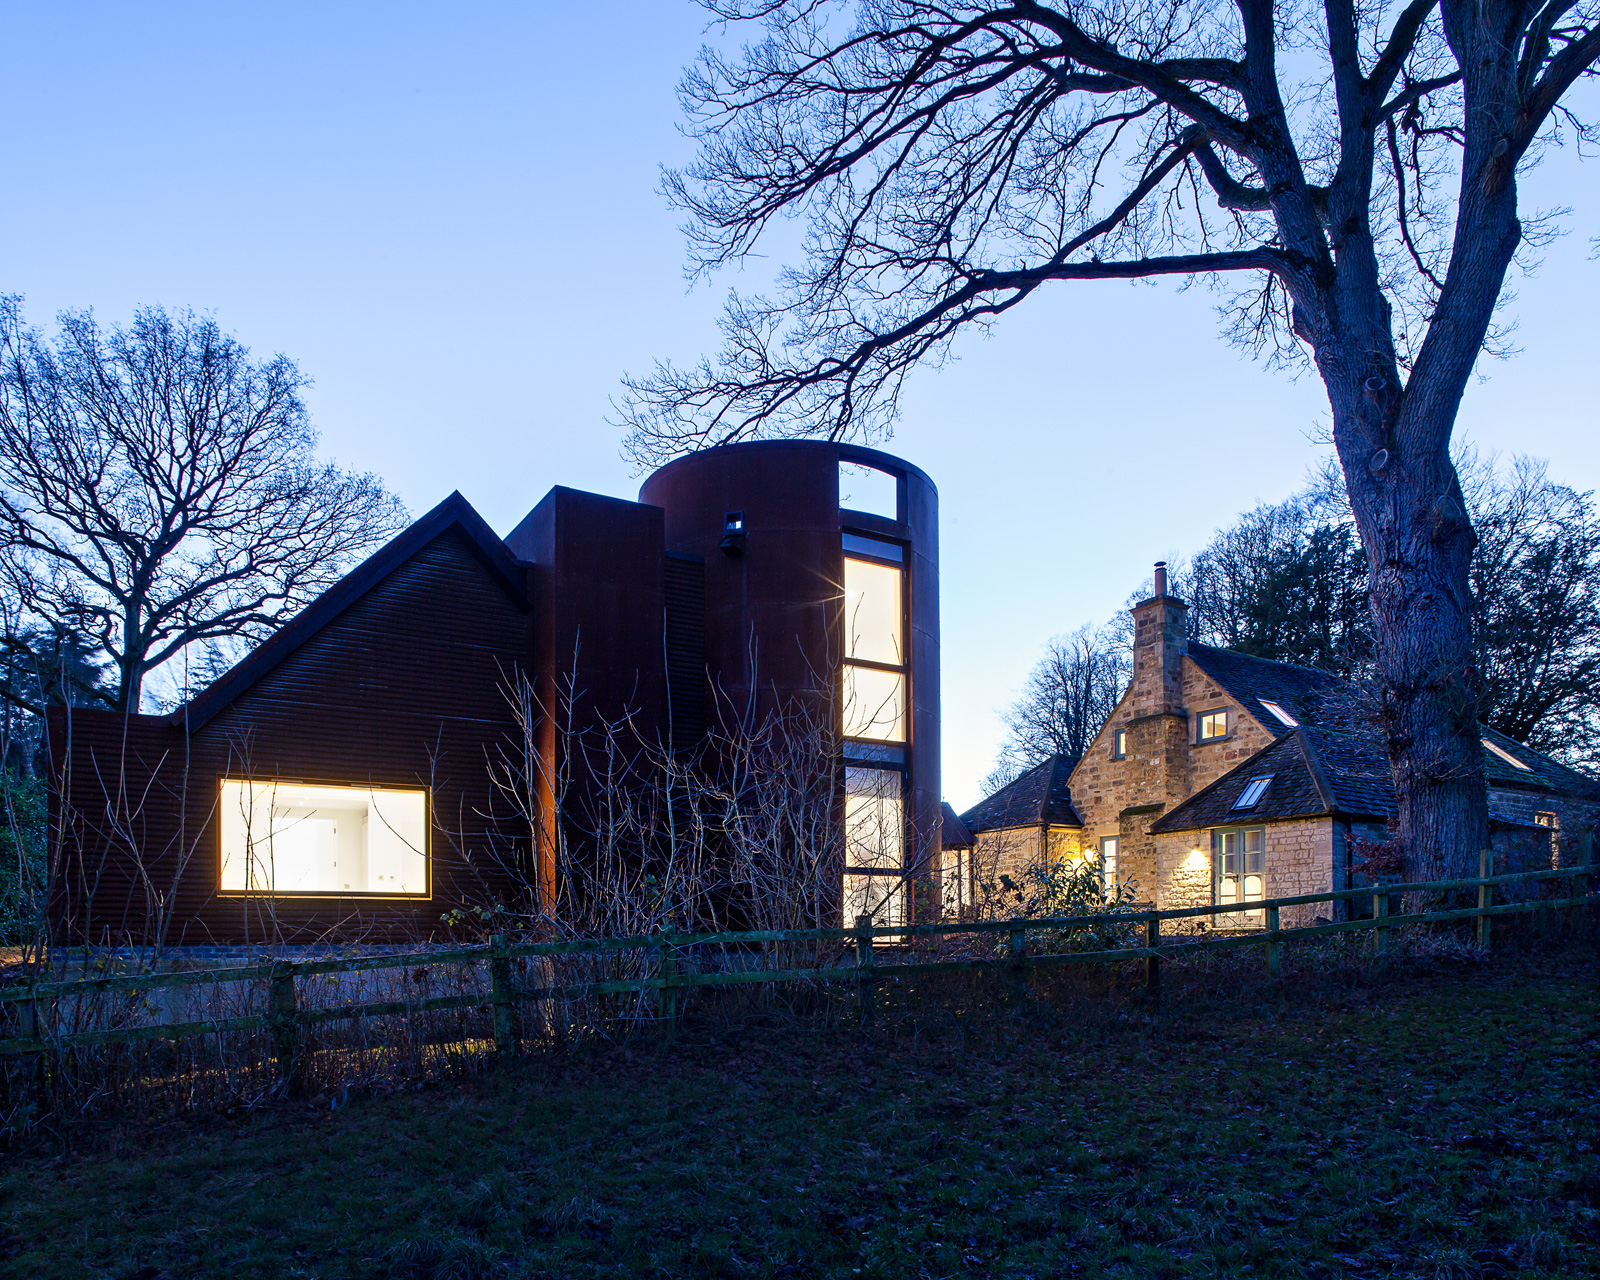 Gasworks Cottage by Chris Dyson Architects. Photography: Peter Landers